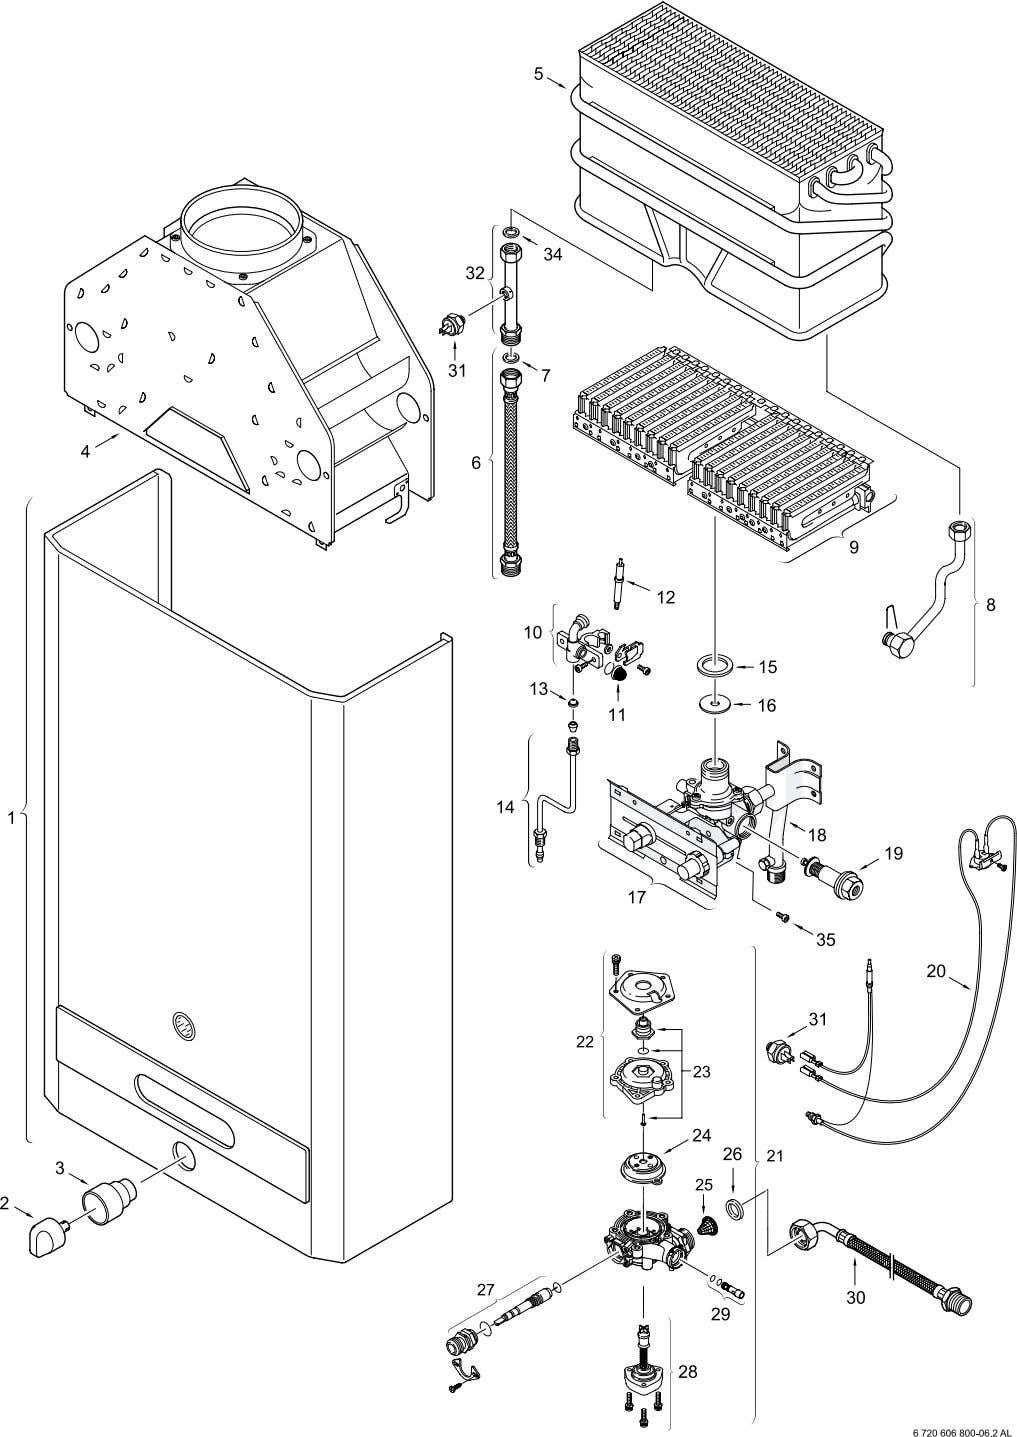 Fig. 13 - INTERIOR COMPONENTS DIAGRAM AND PARTS LIST 20 6 720 607 030